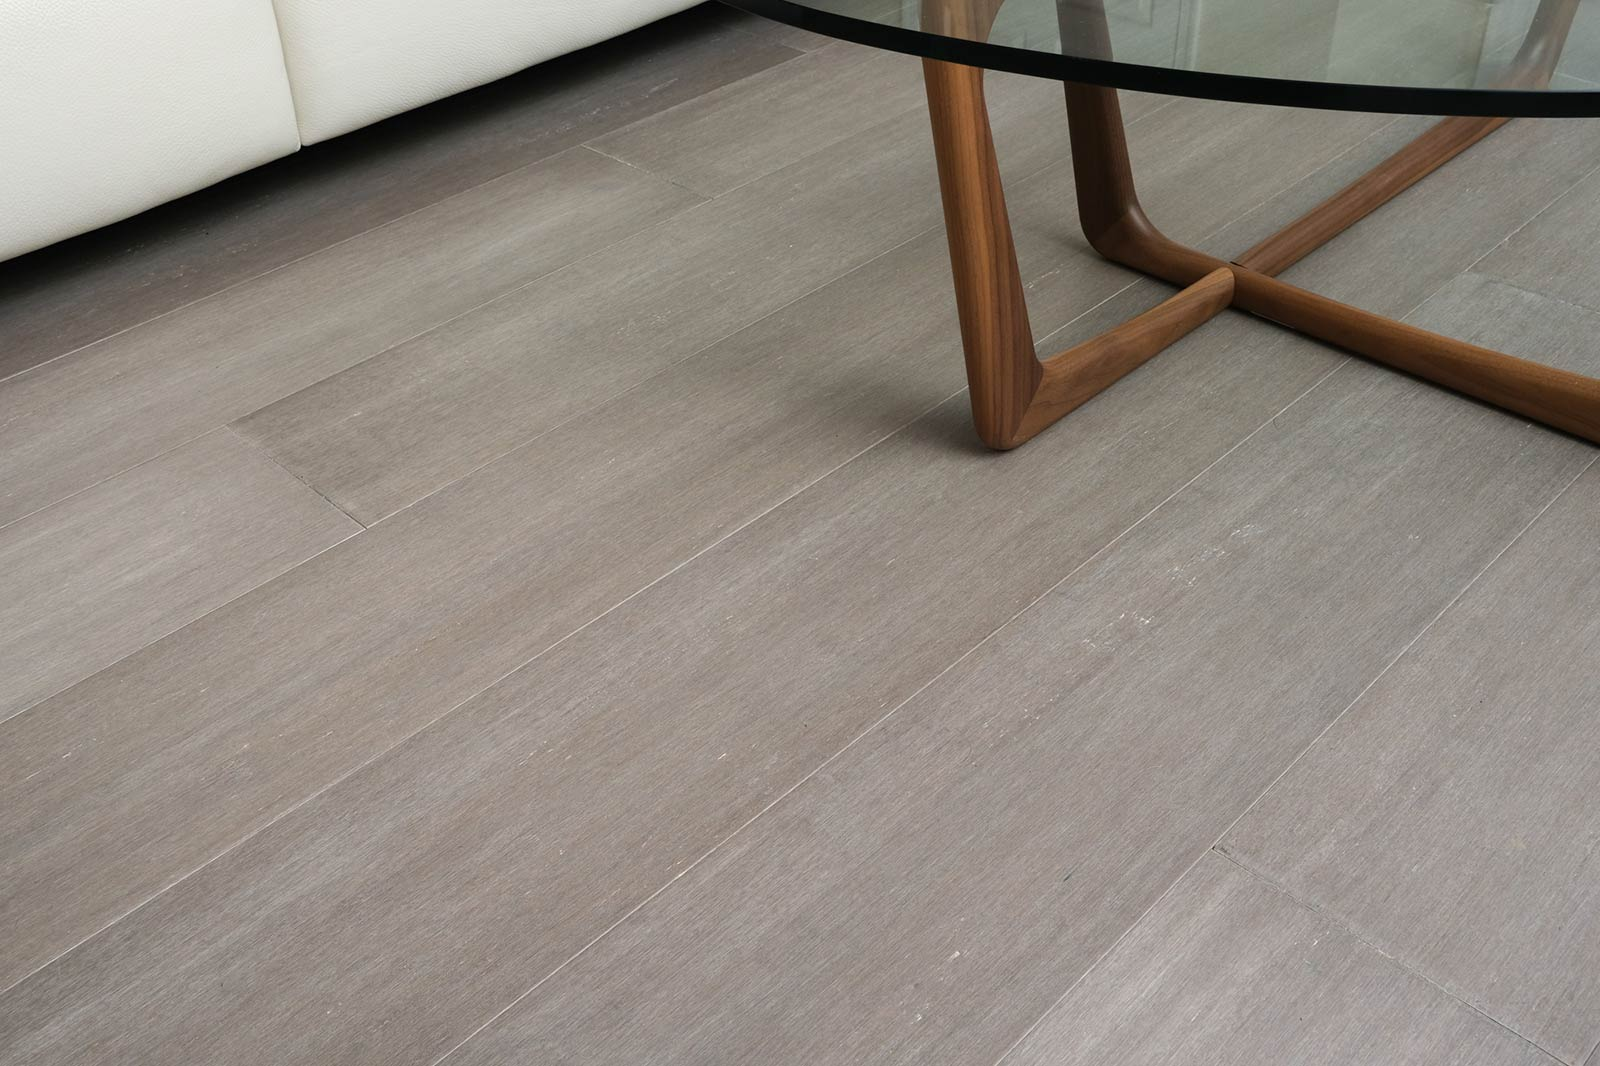 Rustic Mist Light Grey Washed Bamboo Flooring6